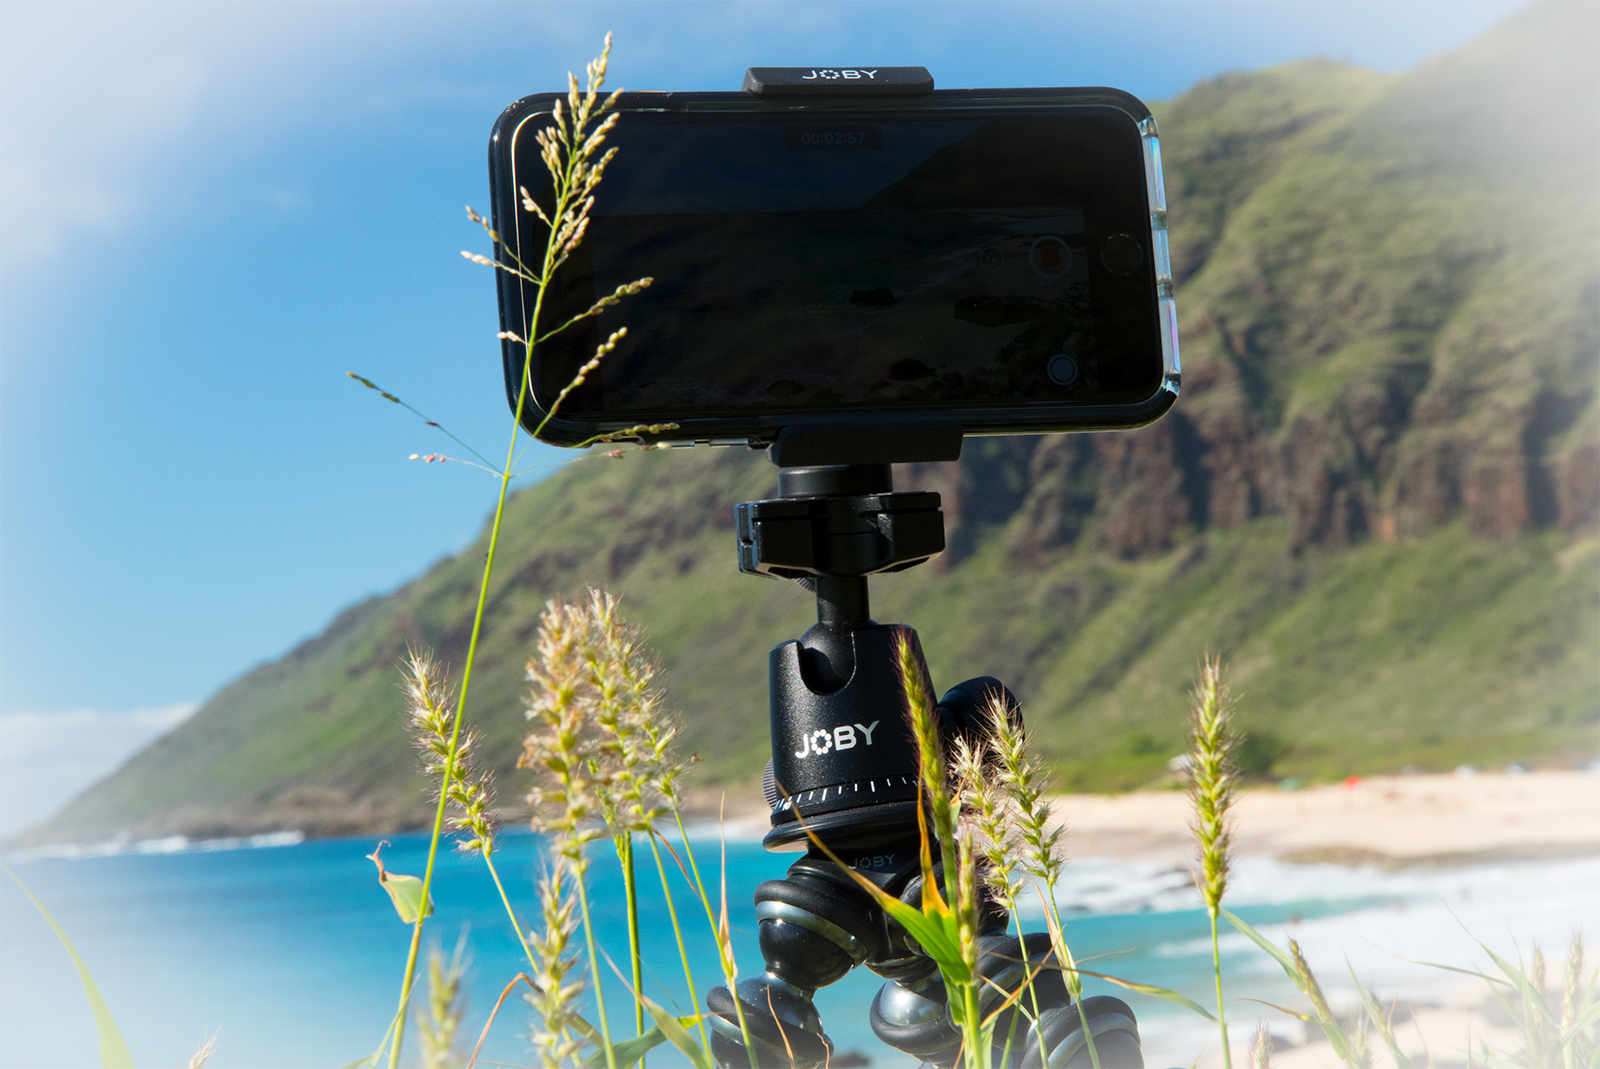 Taking Vacation Photography to the Next Level with Your iPhone with #JOBYAmbassadors Atort